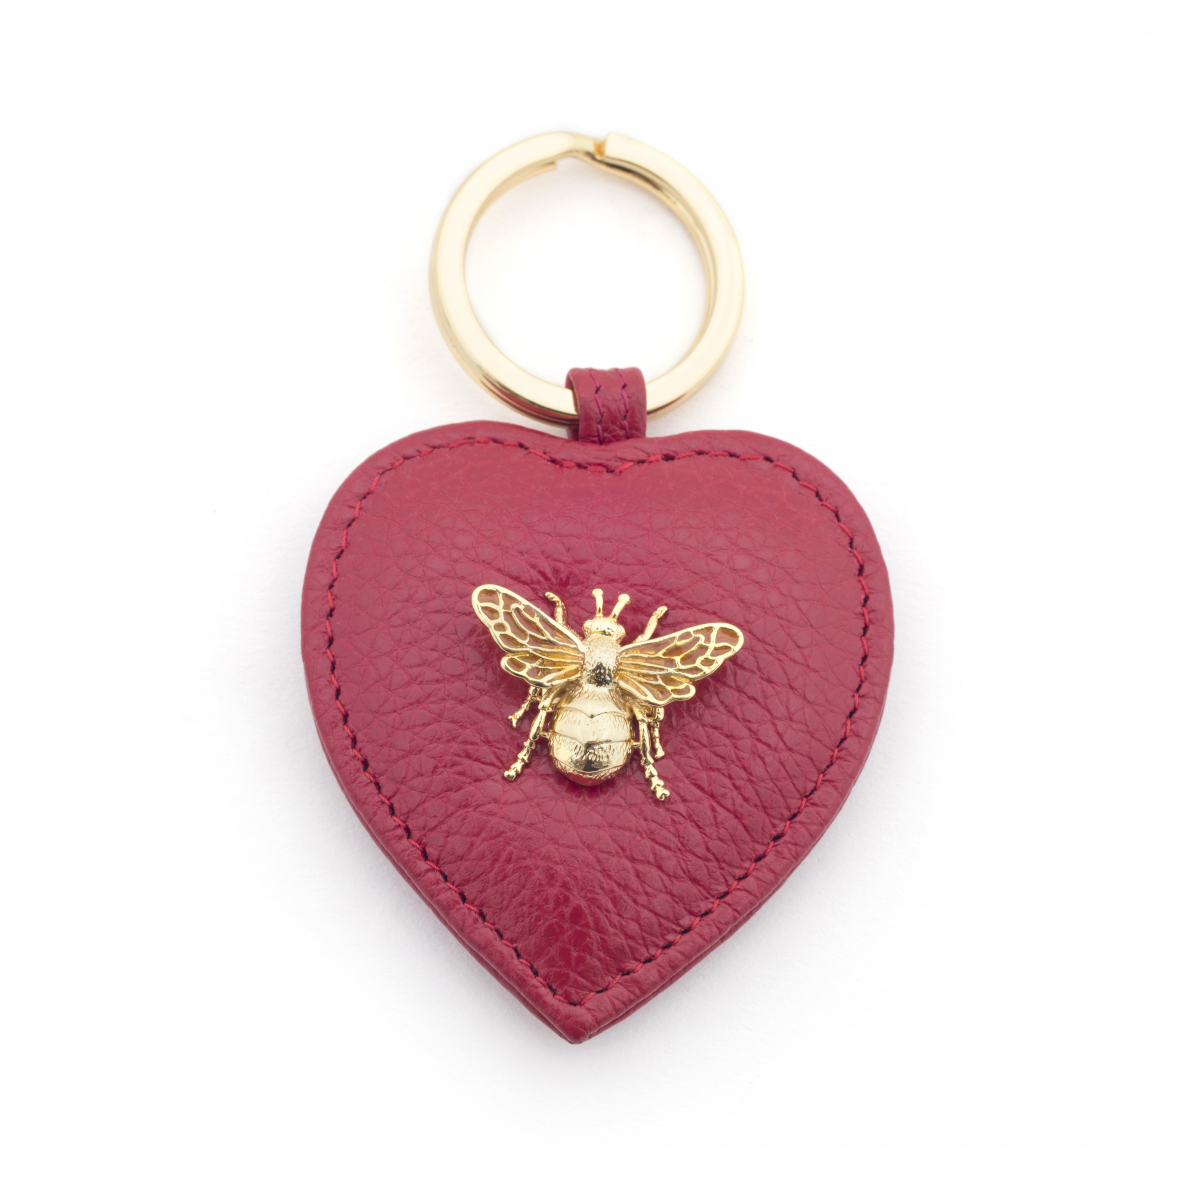 Queen Bee Leather Keyring - Red